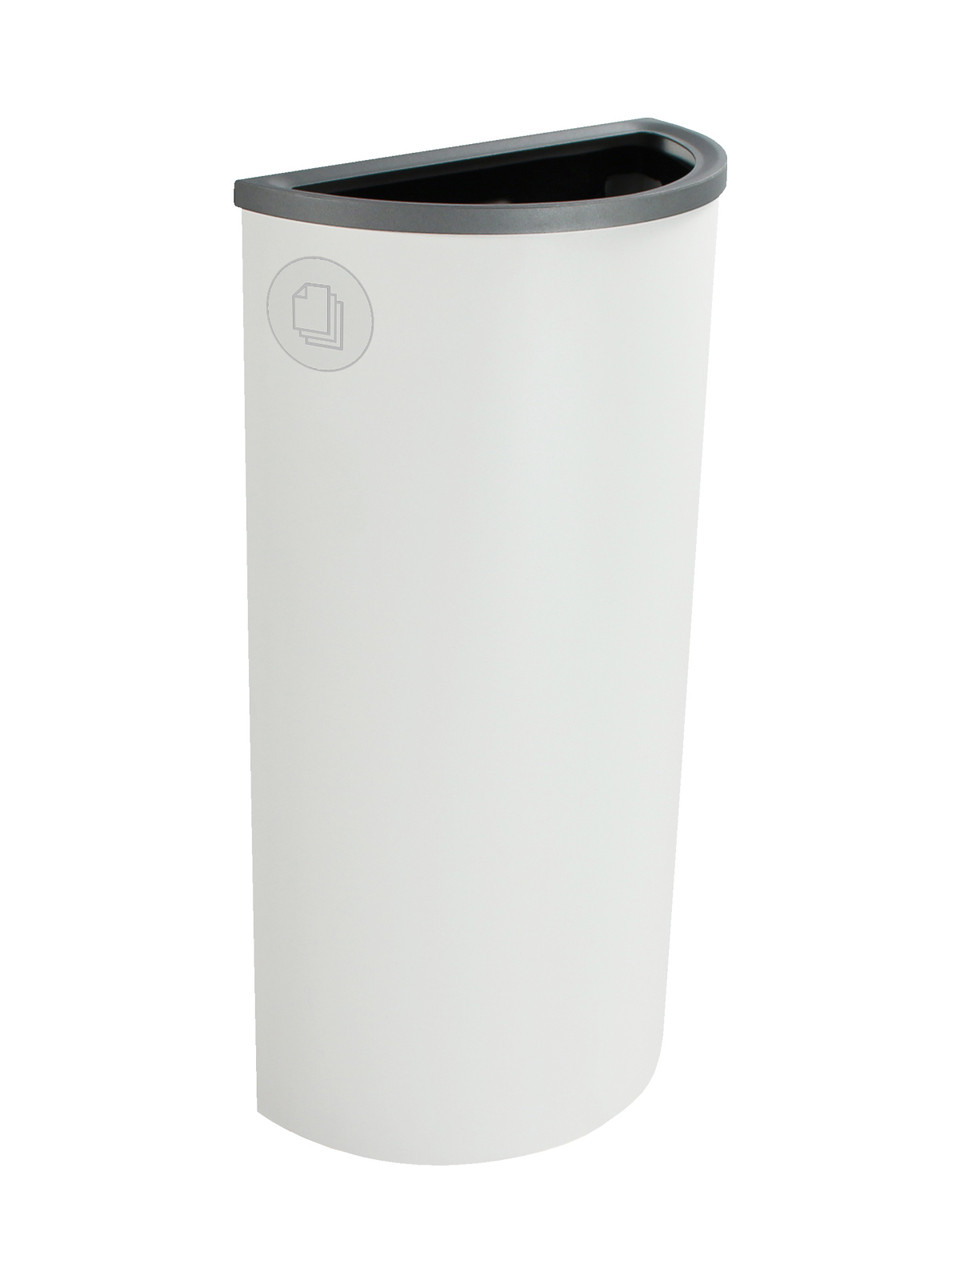 8 Gallon Steel Spectrum Half Round Paper Collector Recycle Bin White 8107029-4